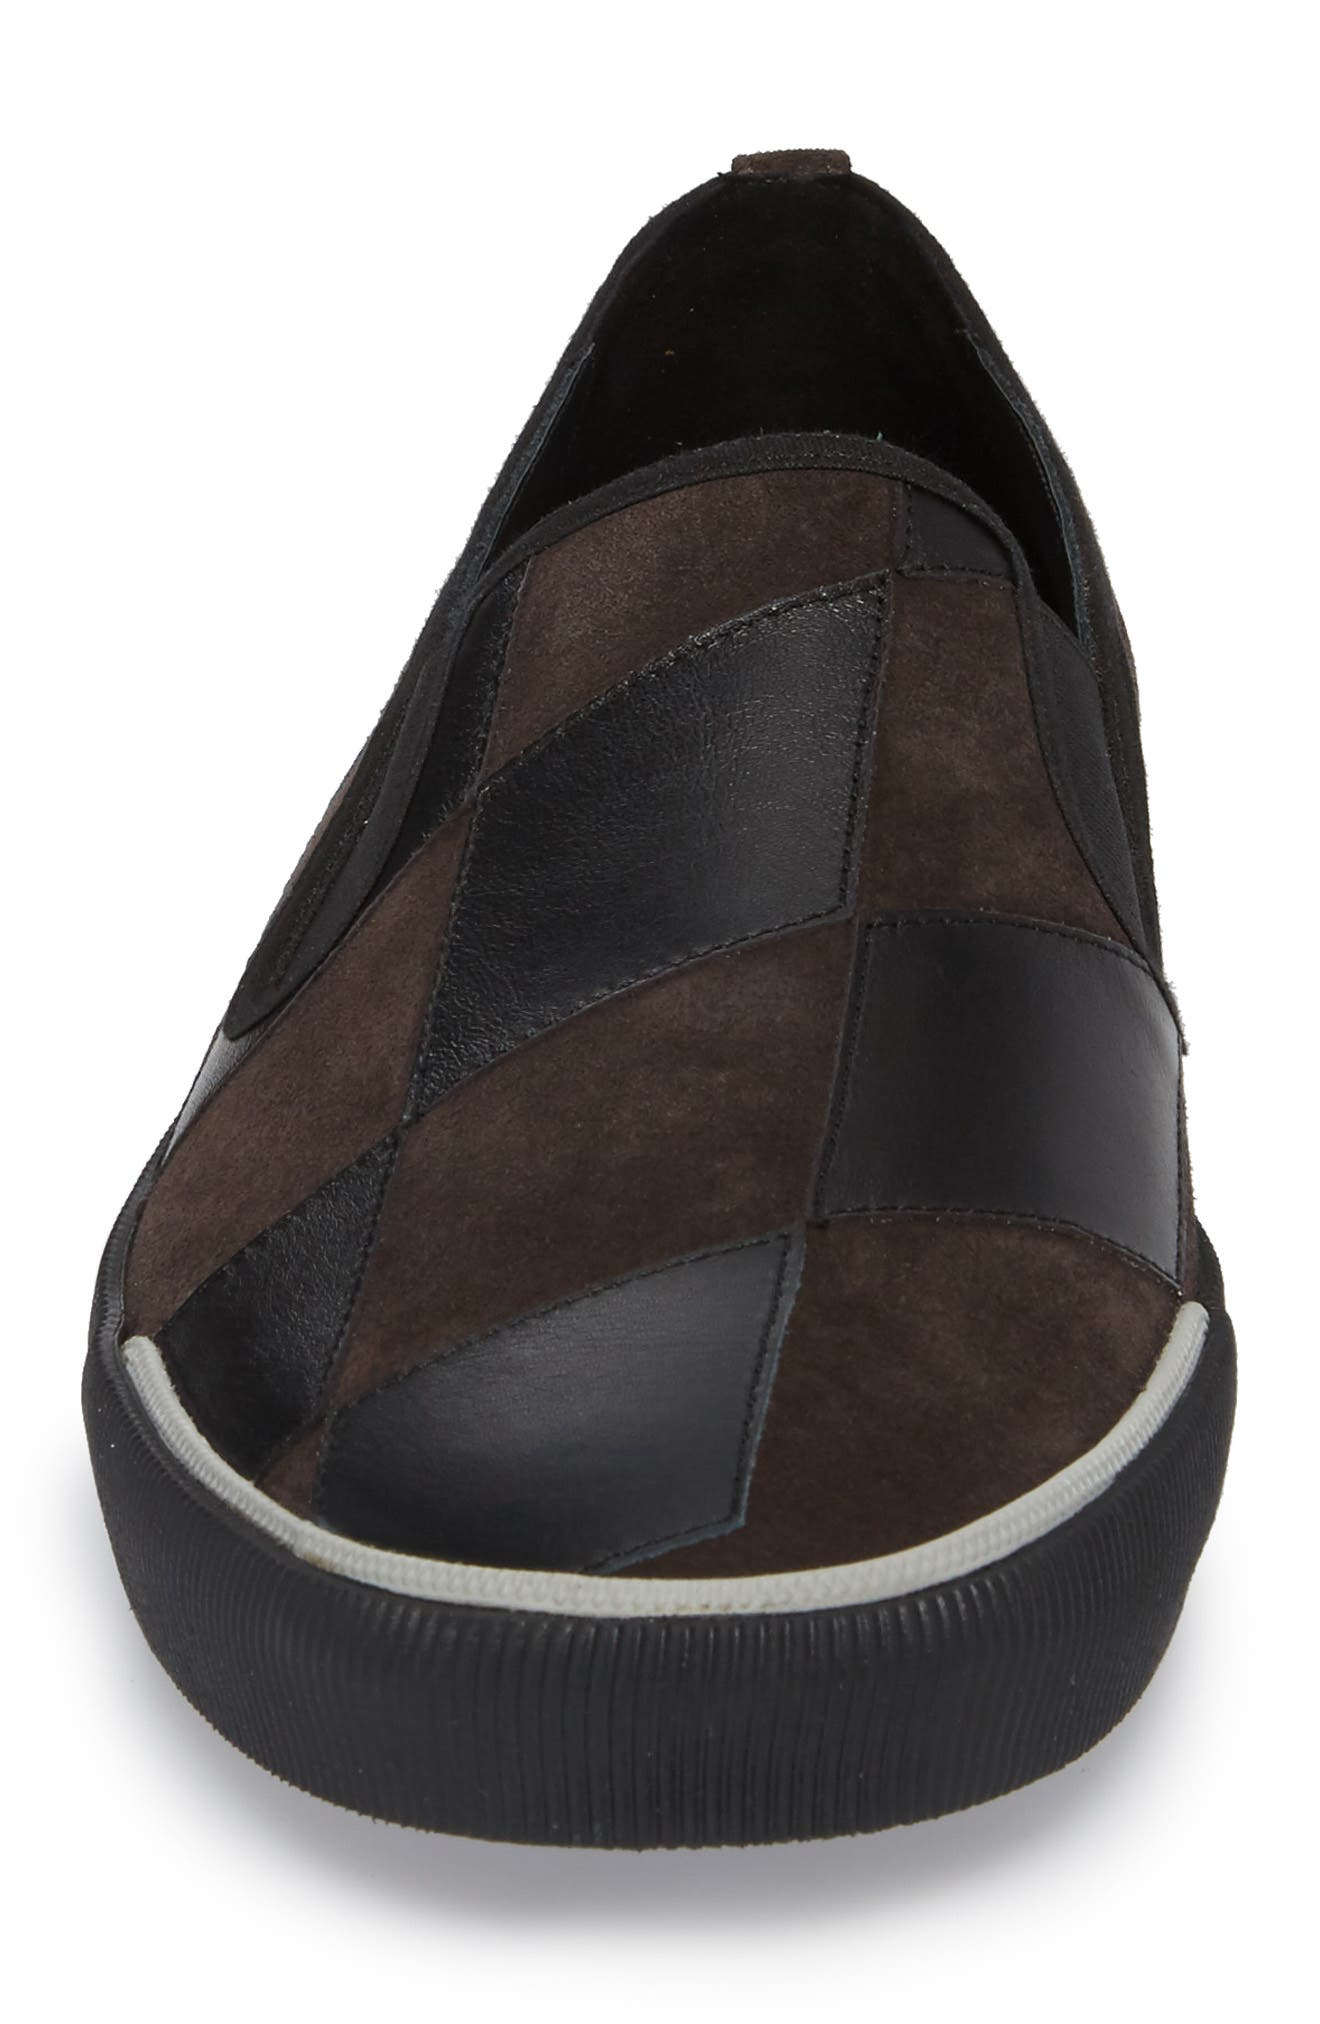 Diamond Patchwork Slip-On Sneaker,                             Alternate thumbnail 4, color,                             Taupe/ Black Leather/ Suede